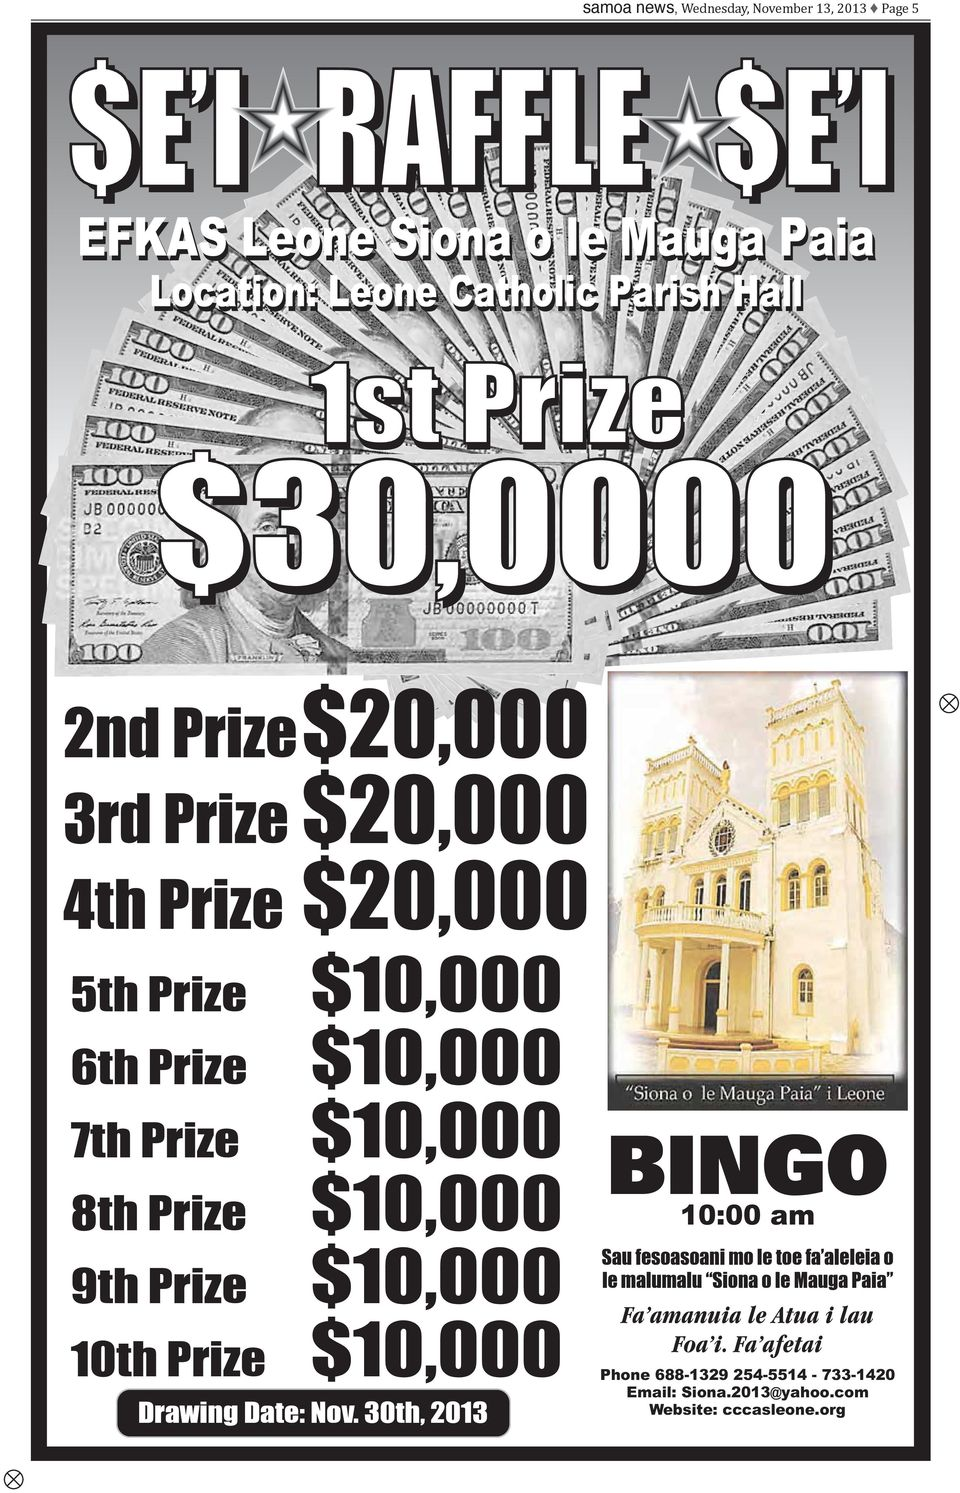 $10,000 9th Prize $10,000 10th Prize $10,000 Drawing Date: Nov.